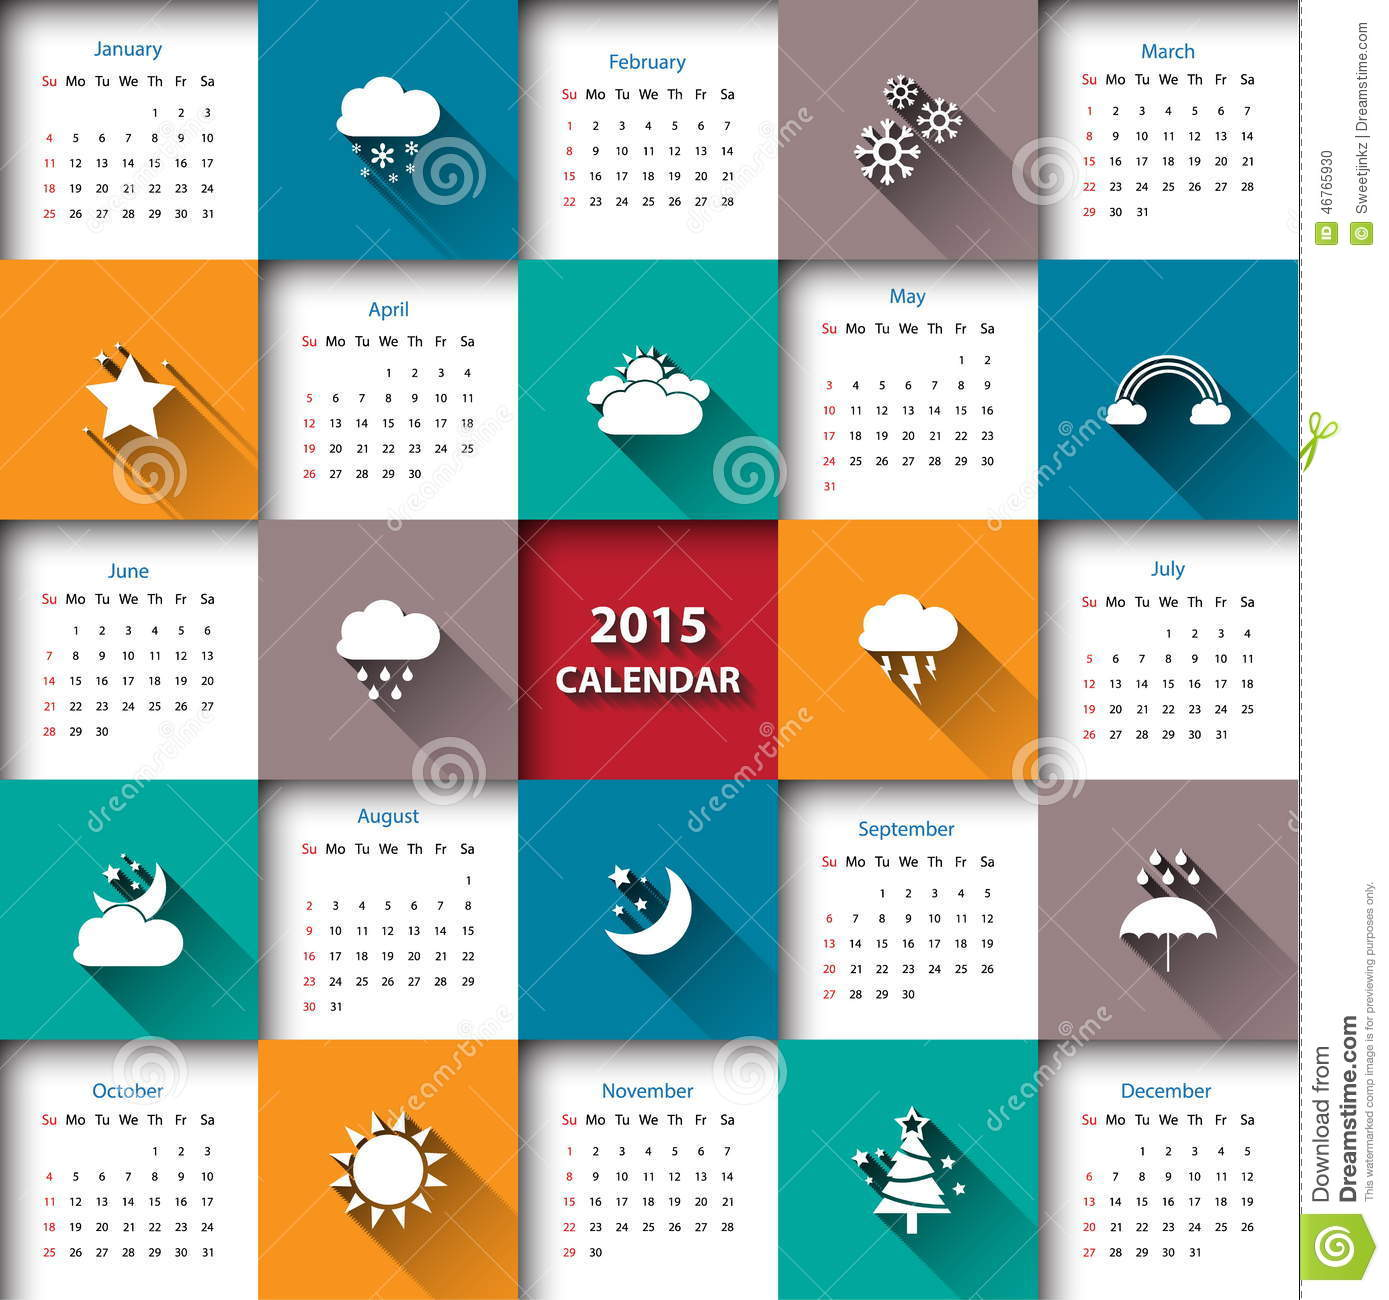 Calendar Illustration Vector : Calendar template with weather icon vector